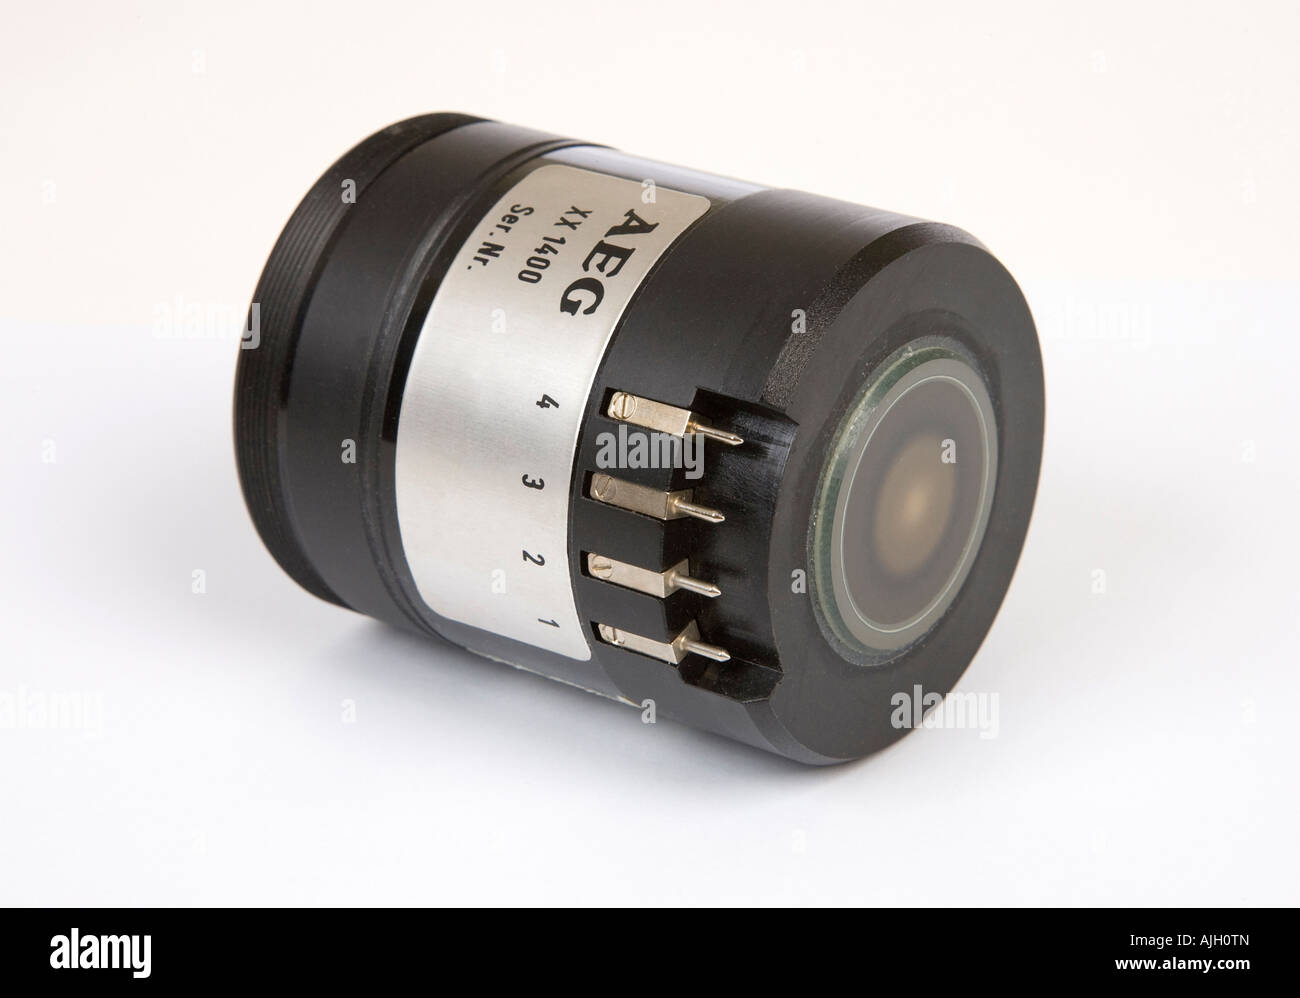 2nd generation AEG XX1400 image intensifier module used for military night vision equipment - Stock Image